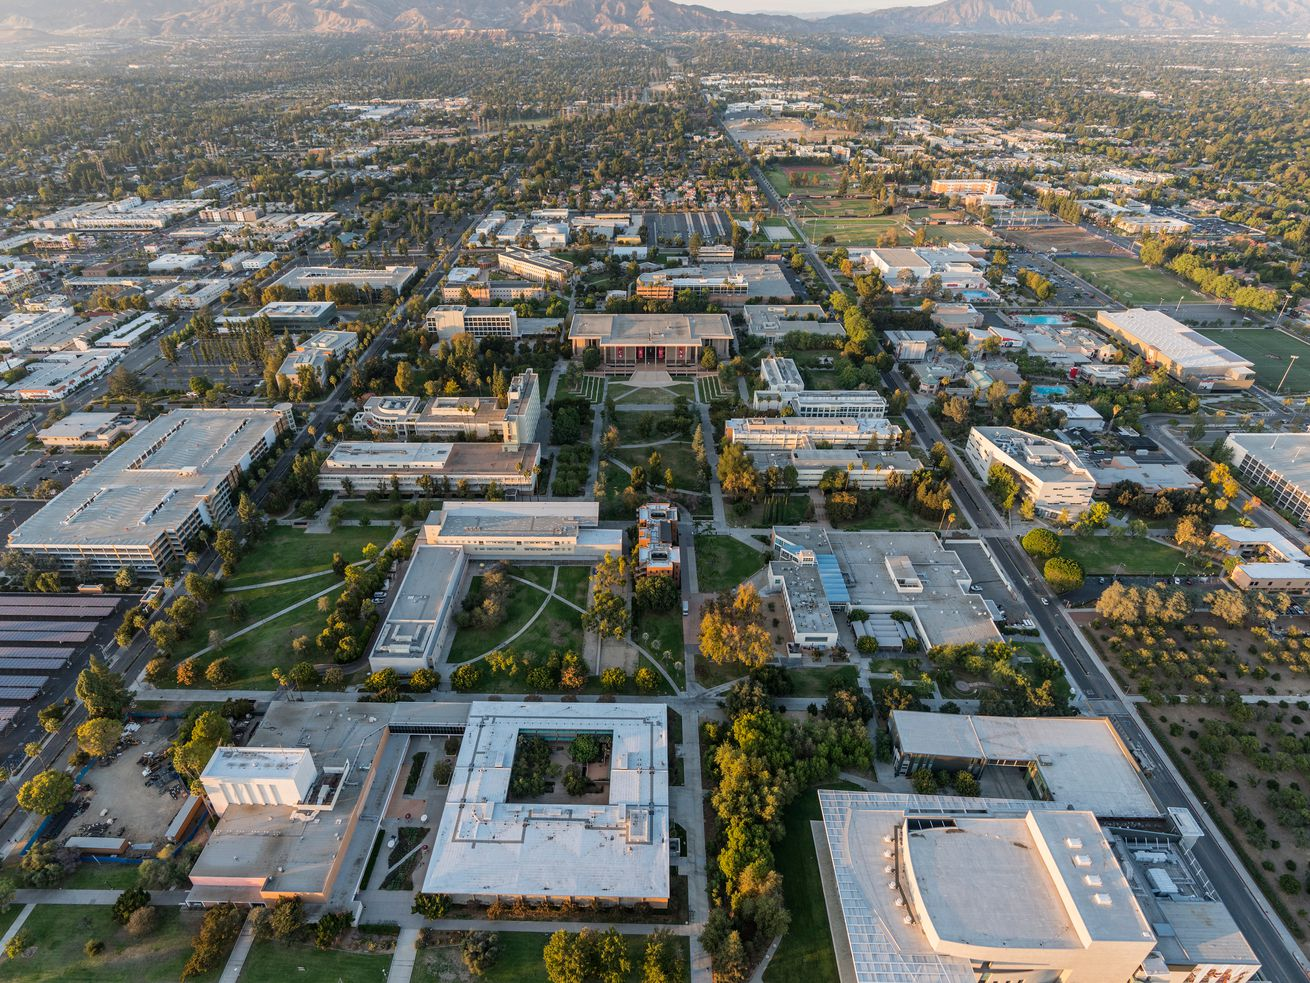 An aerial view of a college campus, surrounded by a grid of streets with low-slung buildings